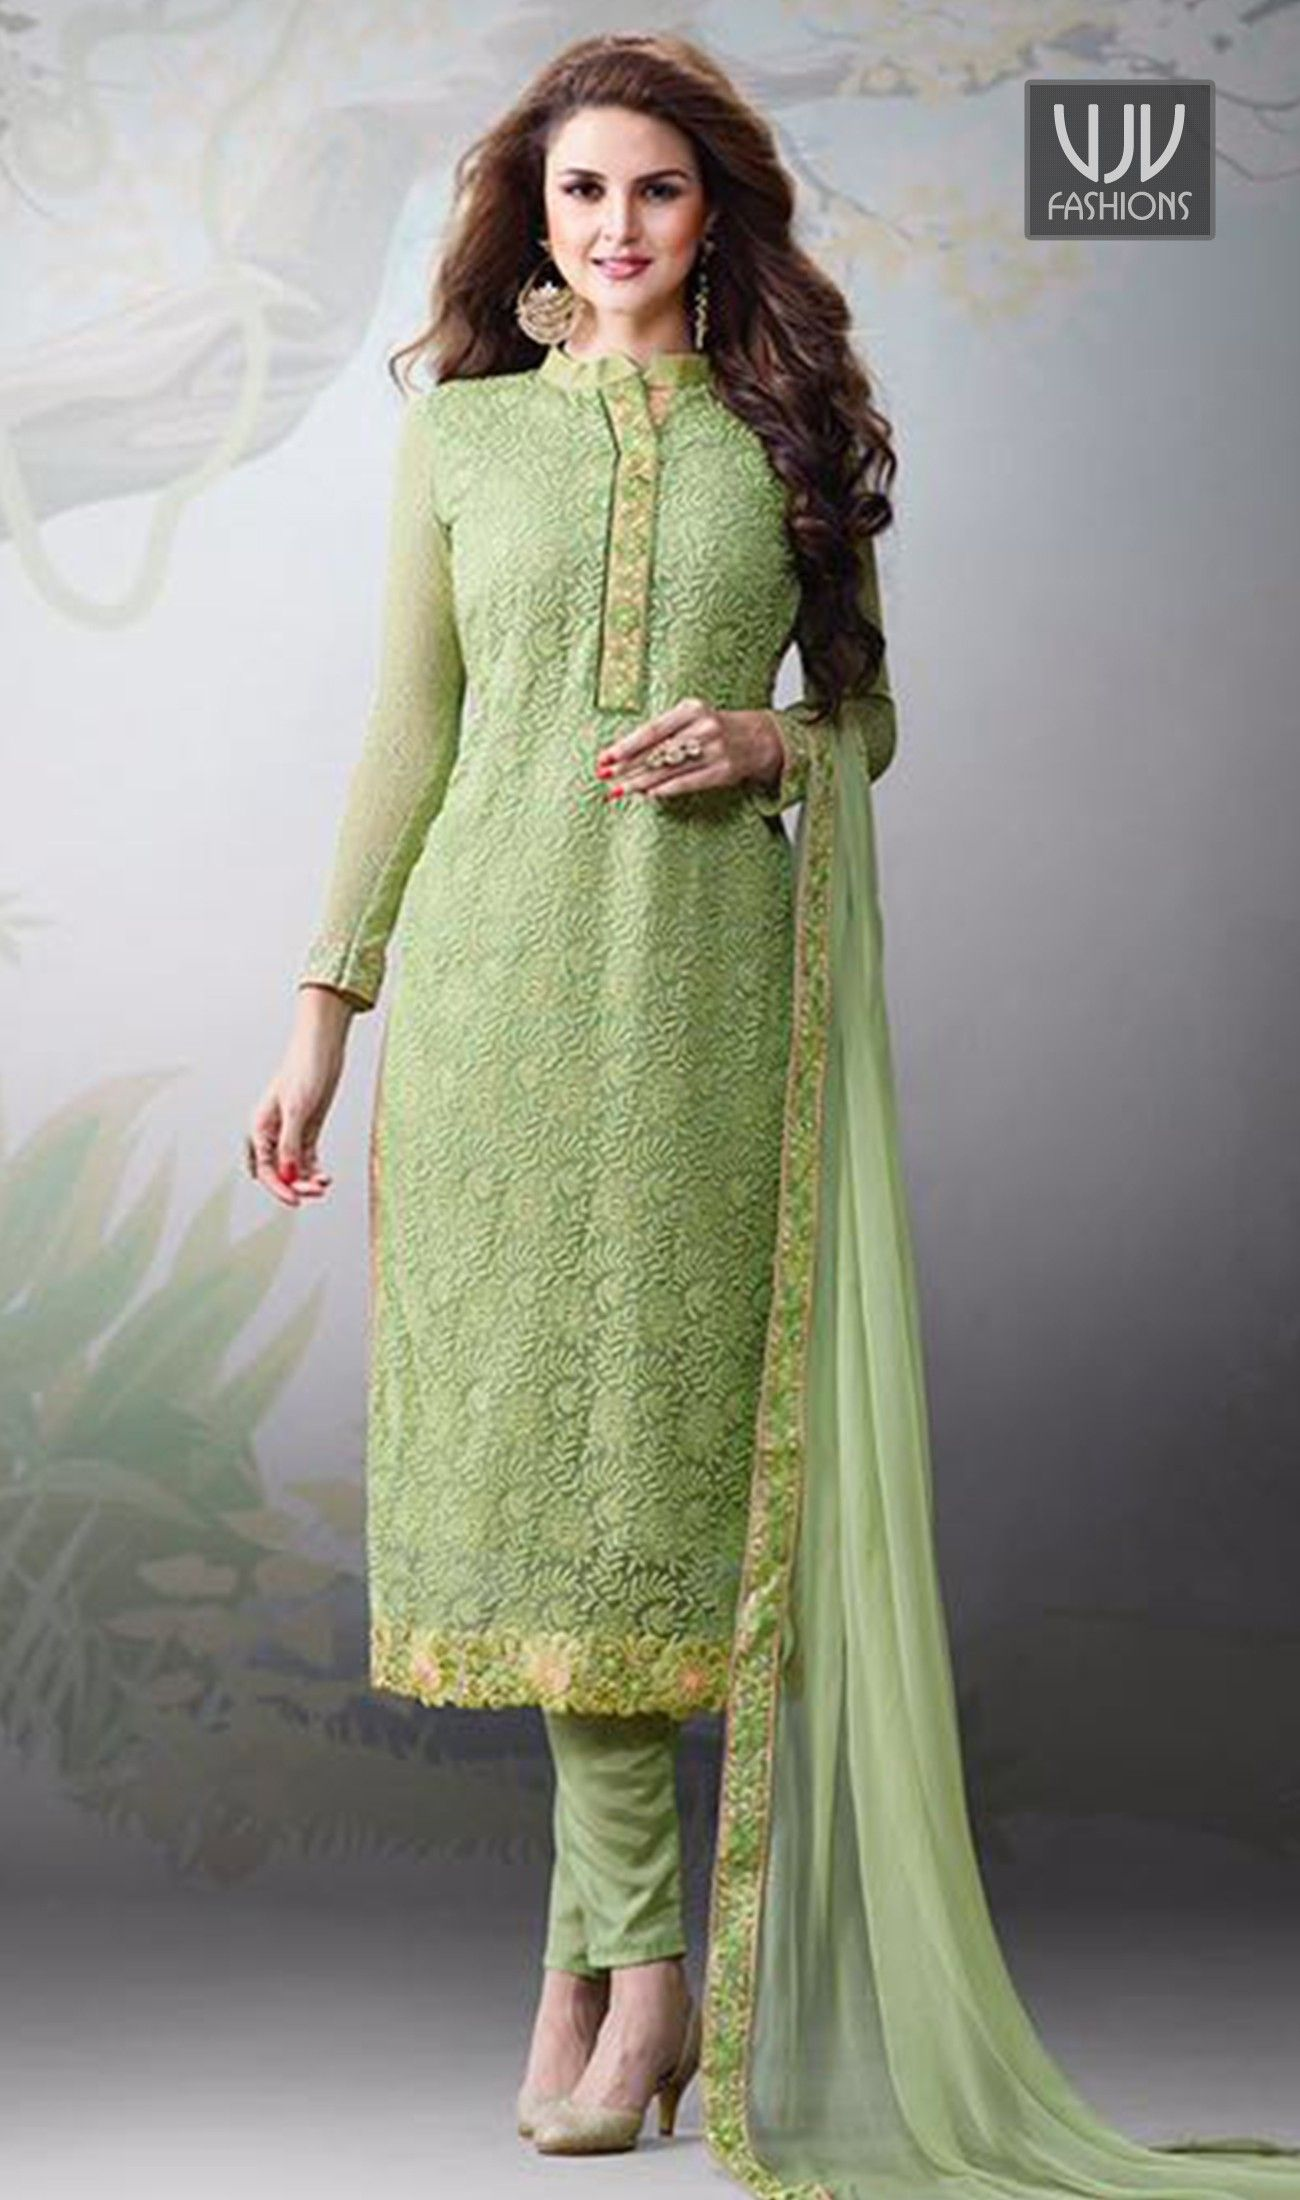 d5753a0468 Innovative Sea Green Color Churidar Designer Suit You are sure to make a  powerful style statement